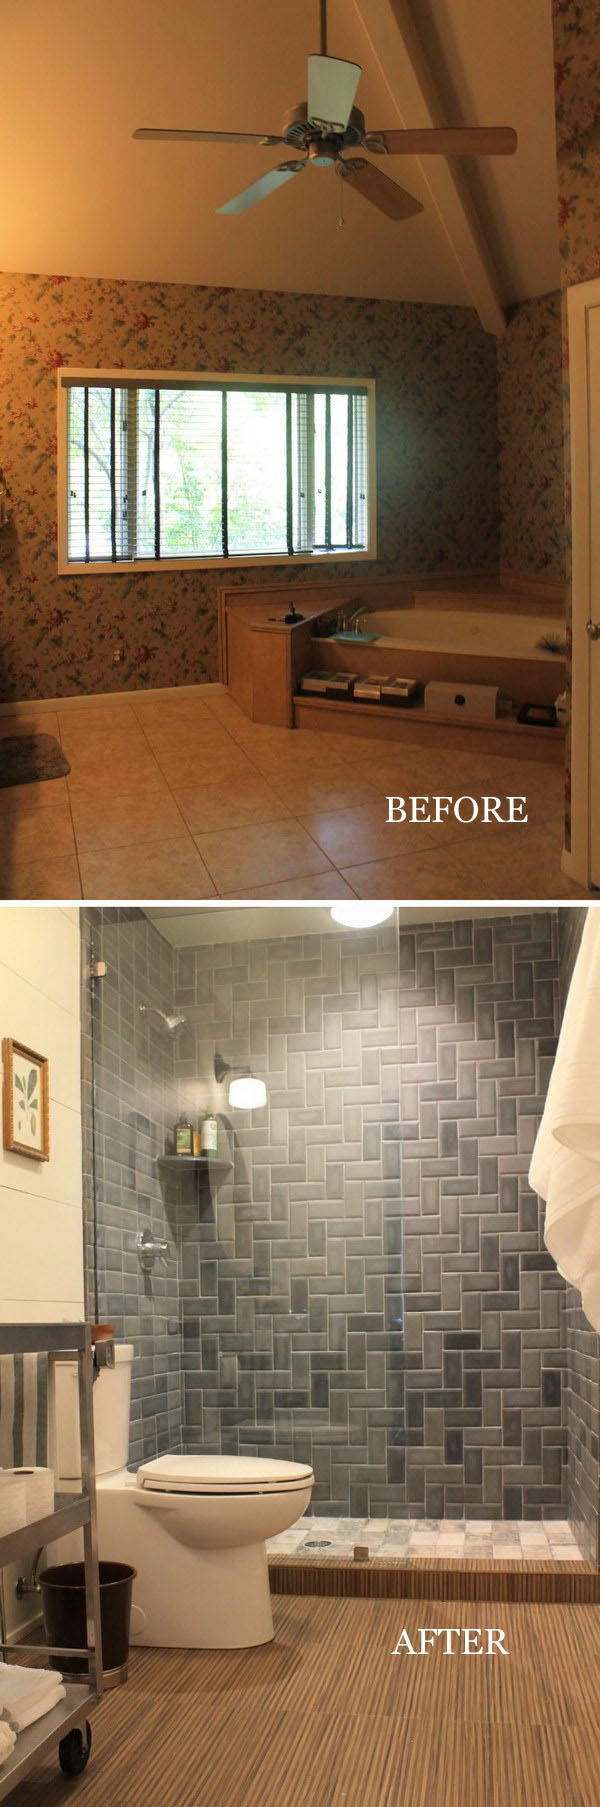 Amazing Bathroom Transformation.